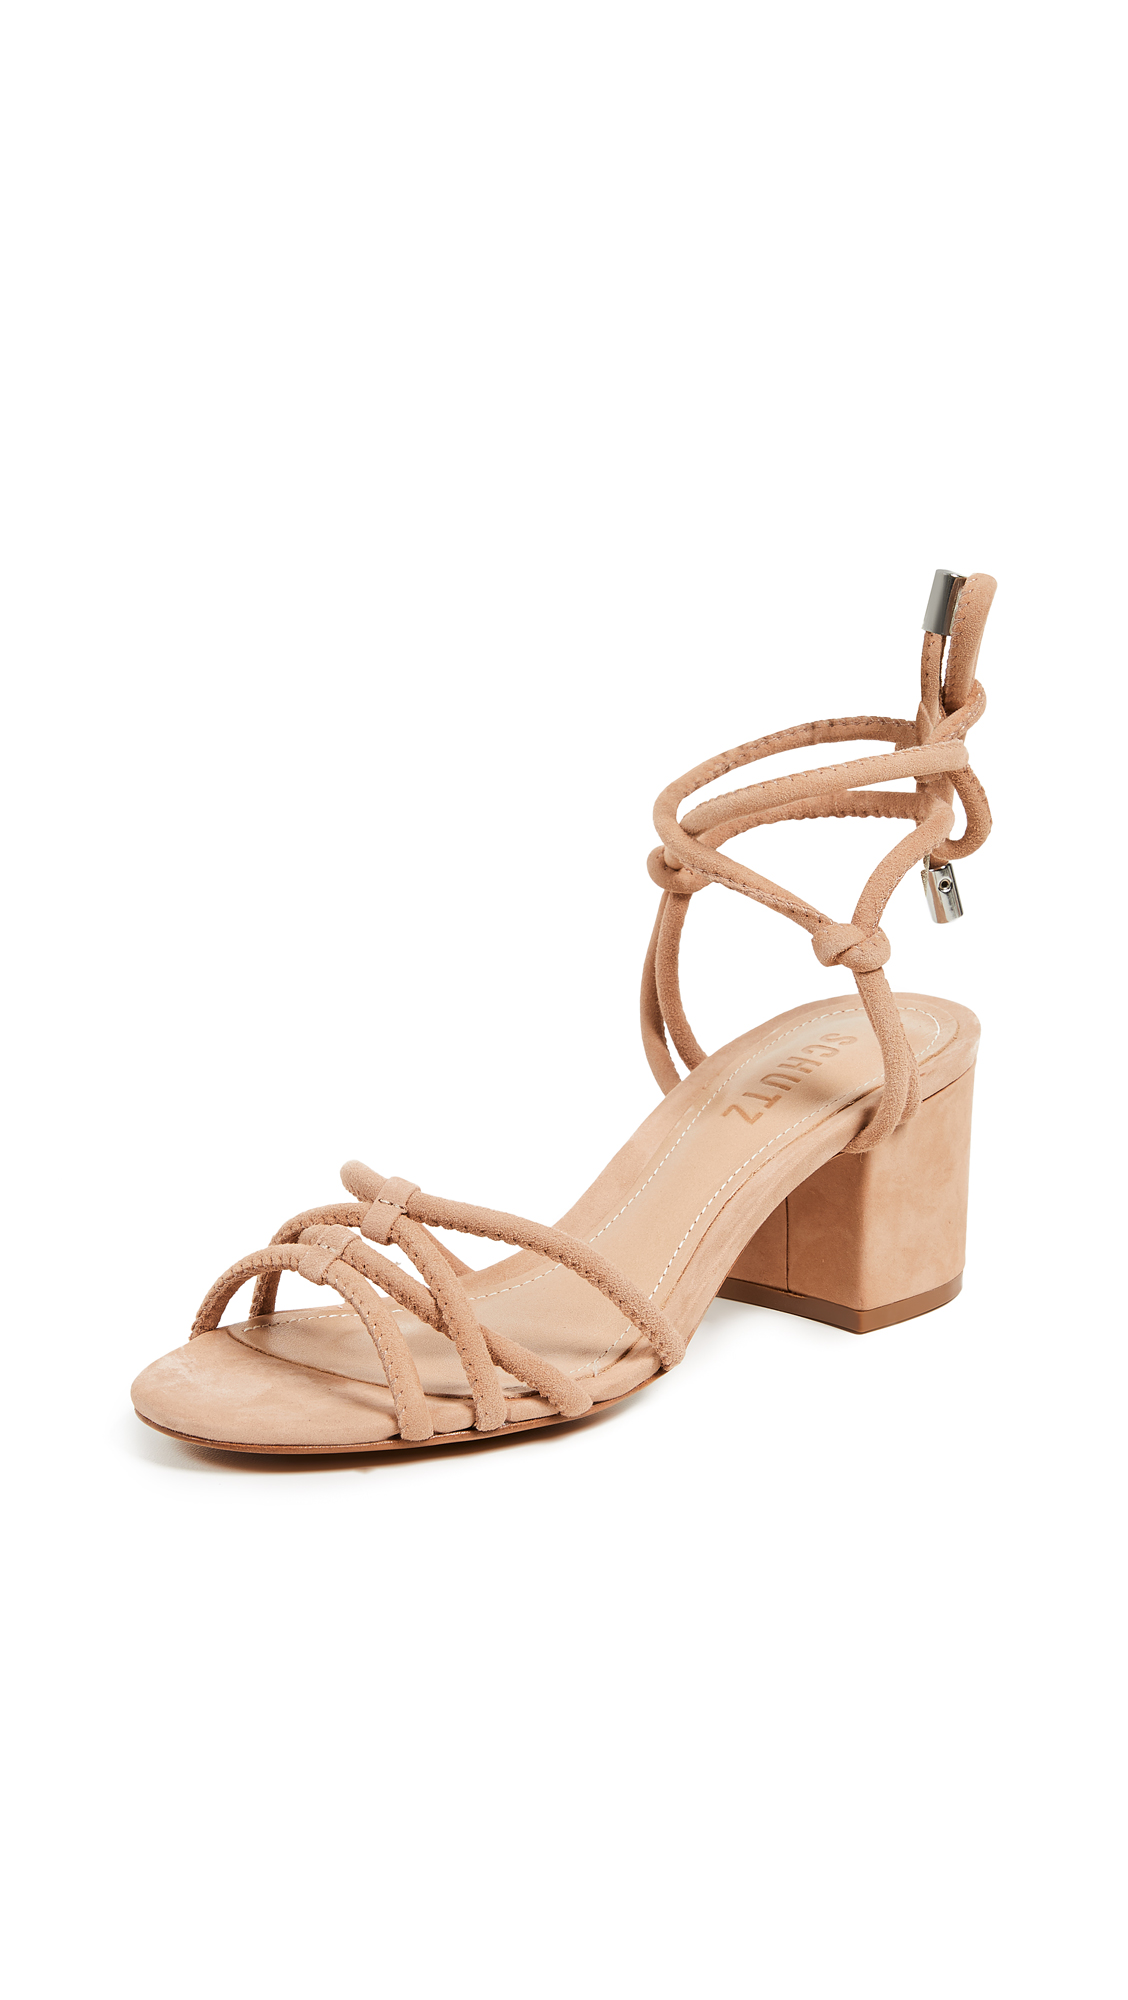 Schutz Marcella Strappy Sandals - 30% Off Sale